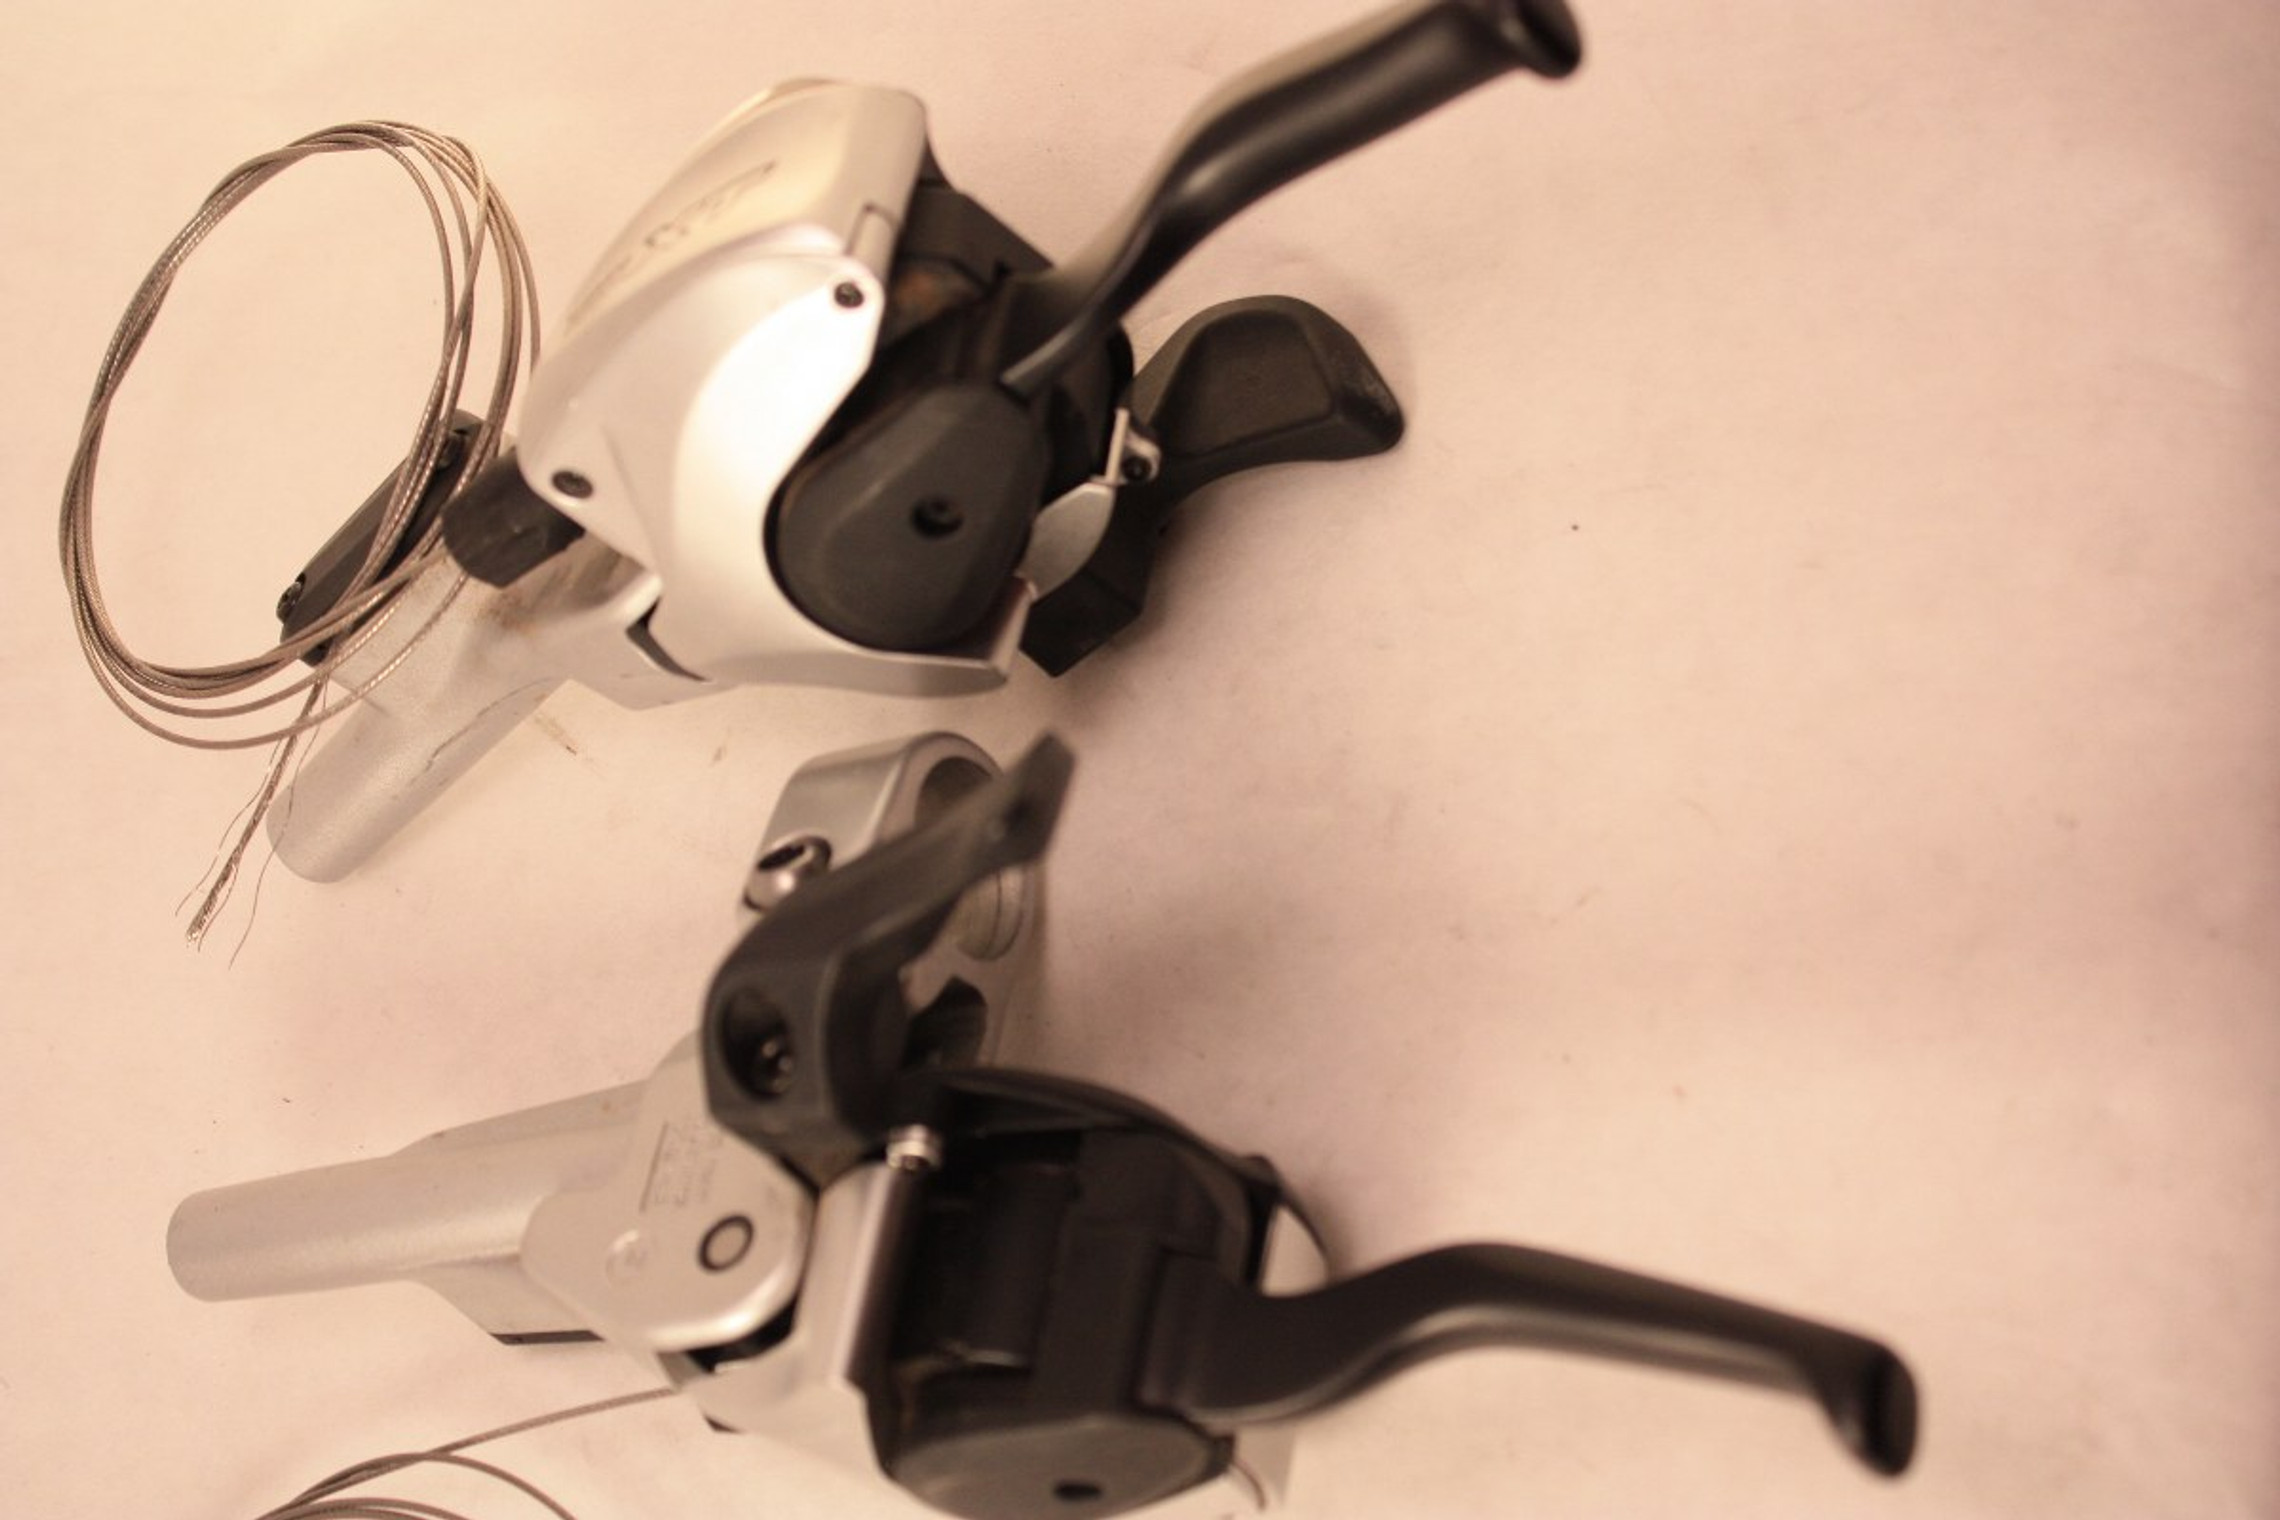 NOS Shimano XT ST-M765 Shifters Hydraulic Disc Brake Levers 9 Speed Dual Control